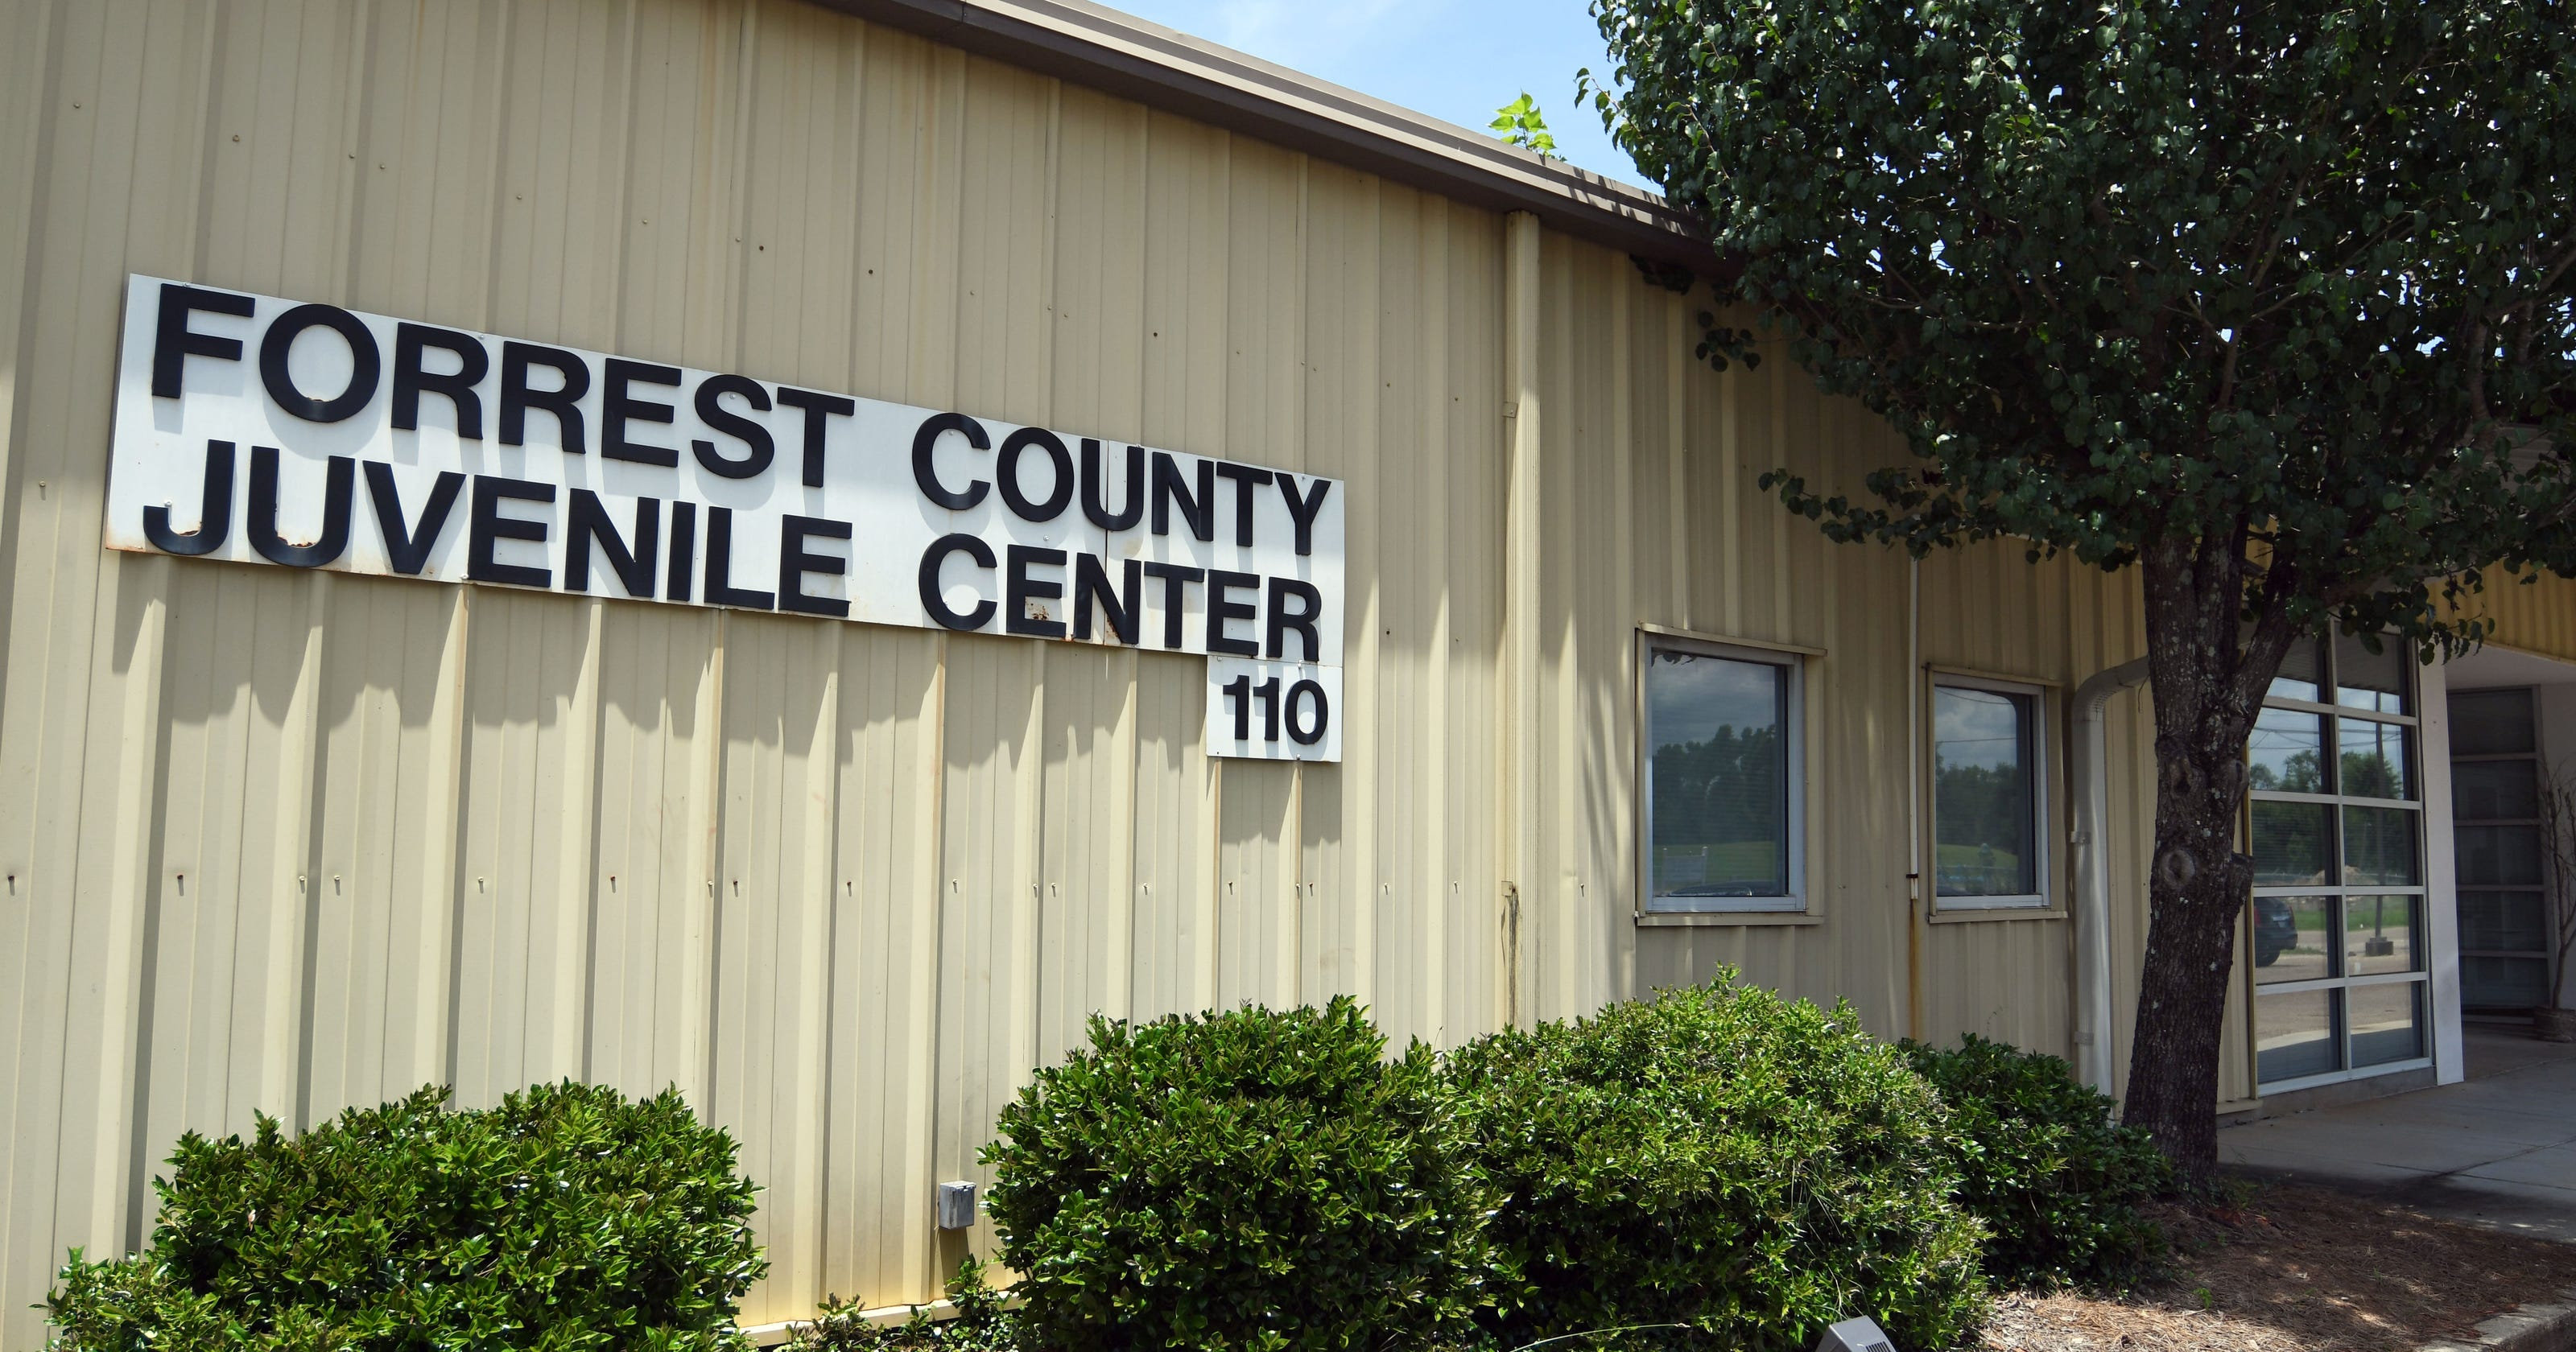 Years After Abuse Forrest County Juvenile Center Improves